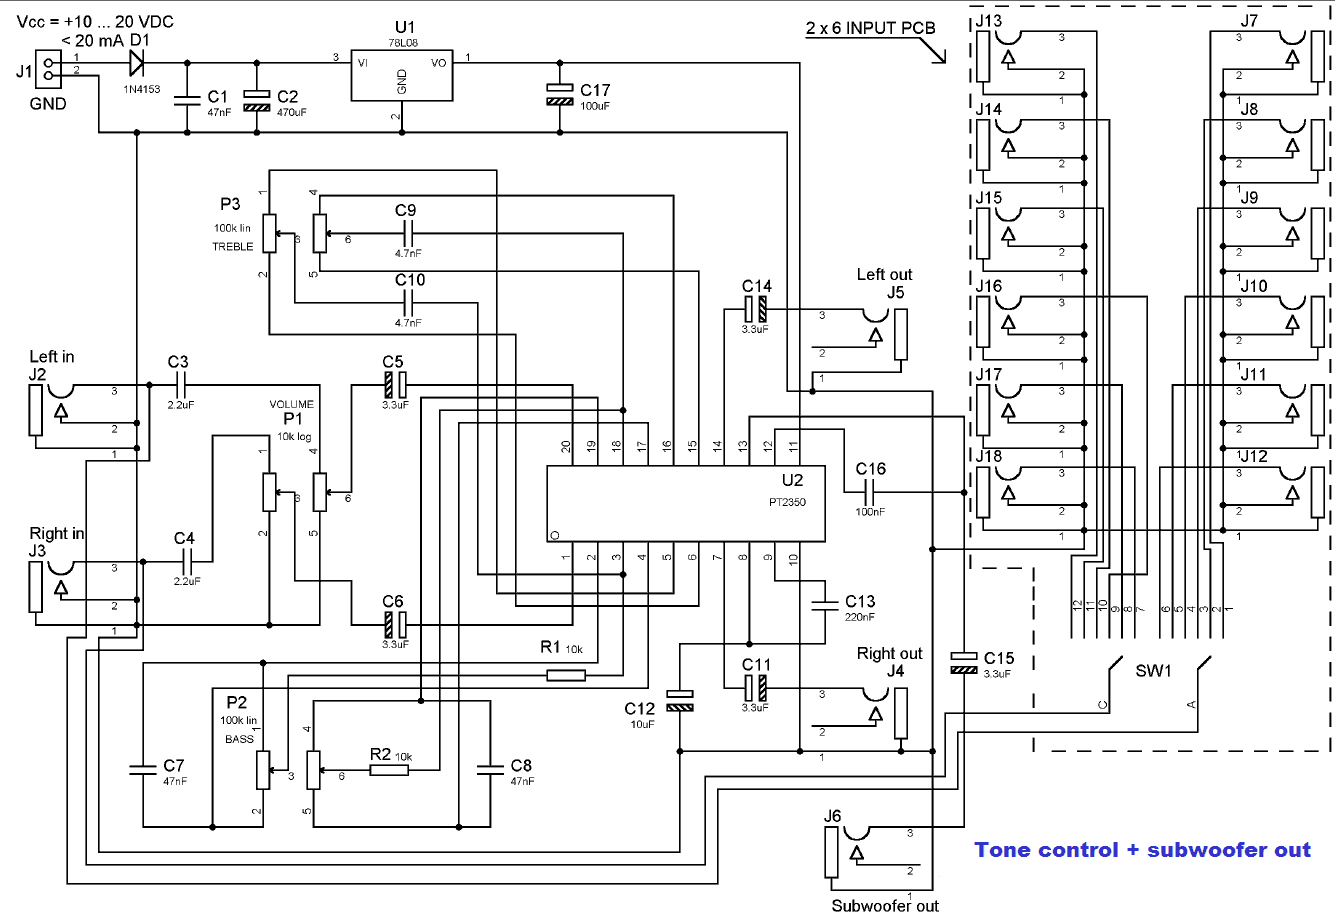 TONE CONTROL AND SUBWOOFER OUT - schematic